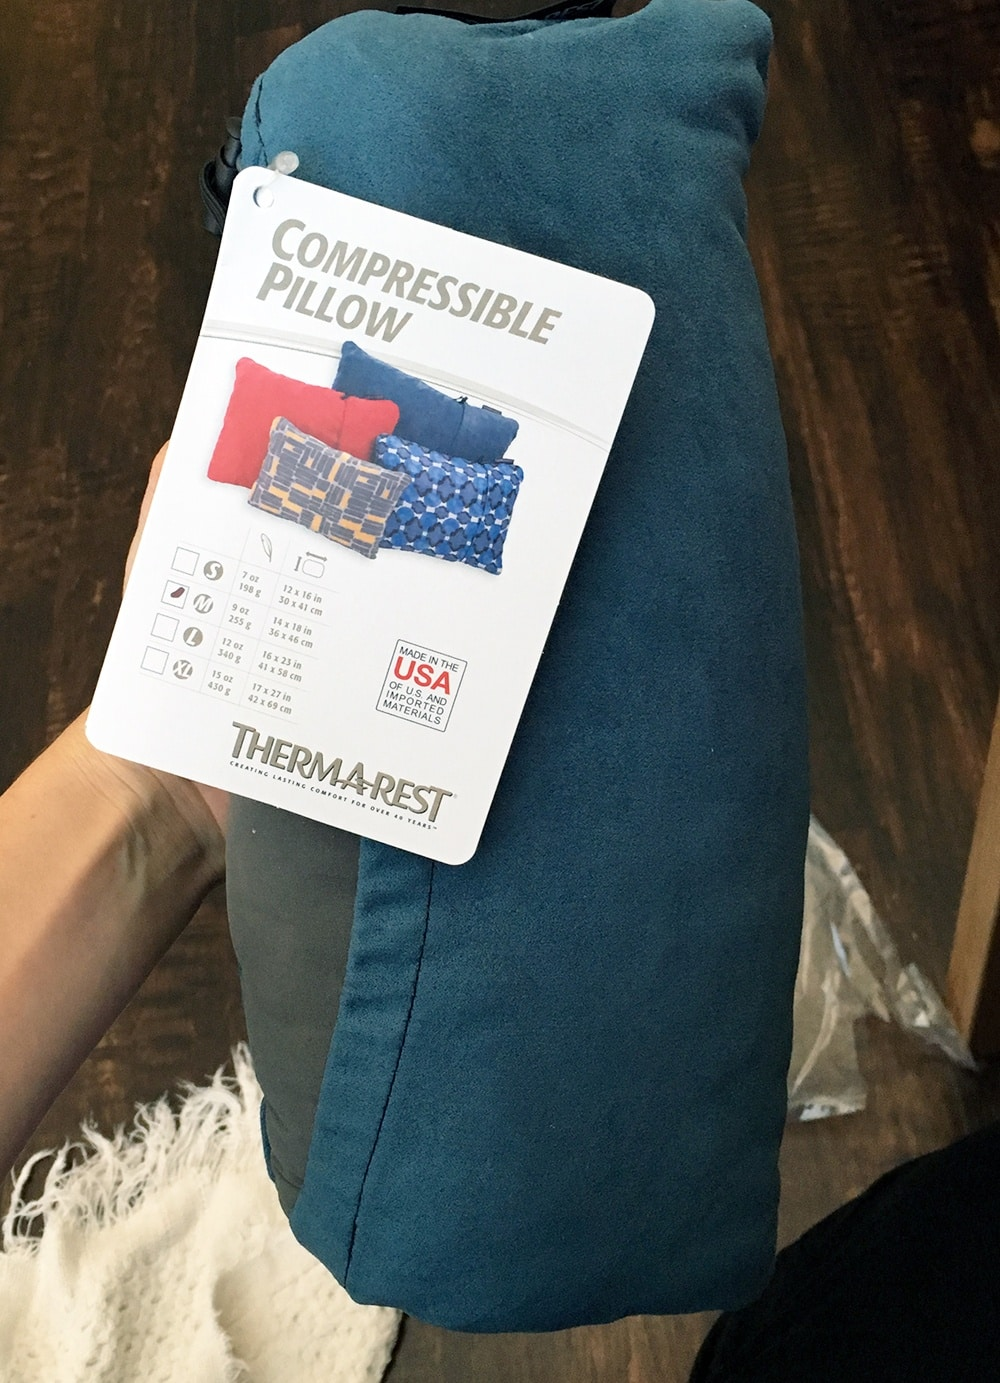 Therm A Rest Compressible Pillow Review